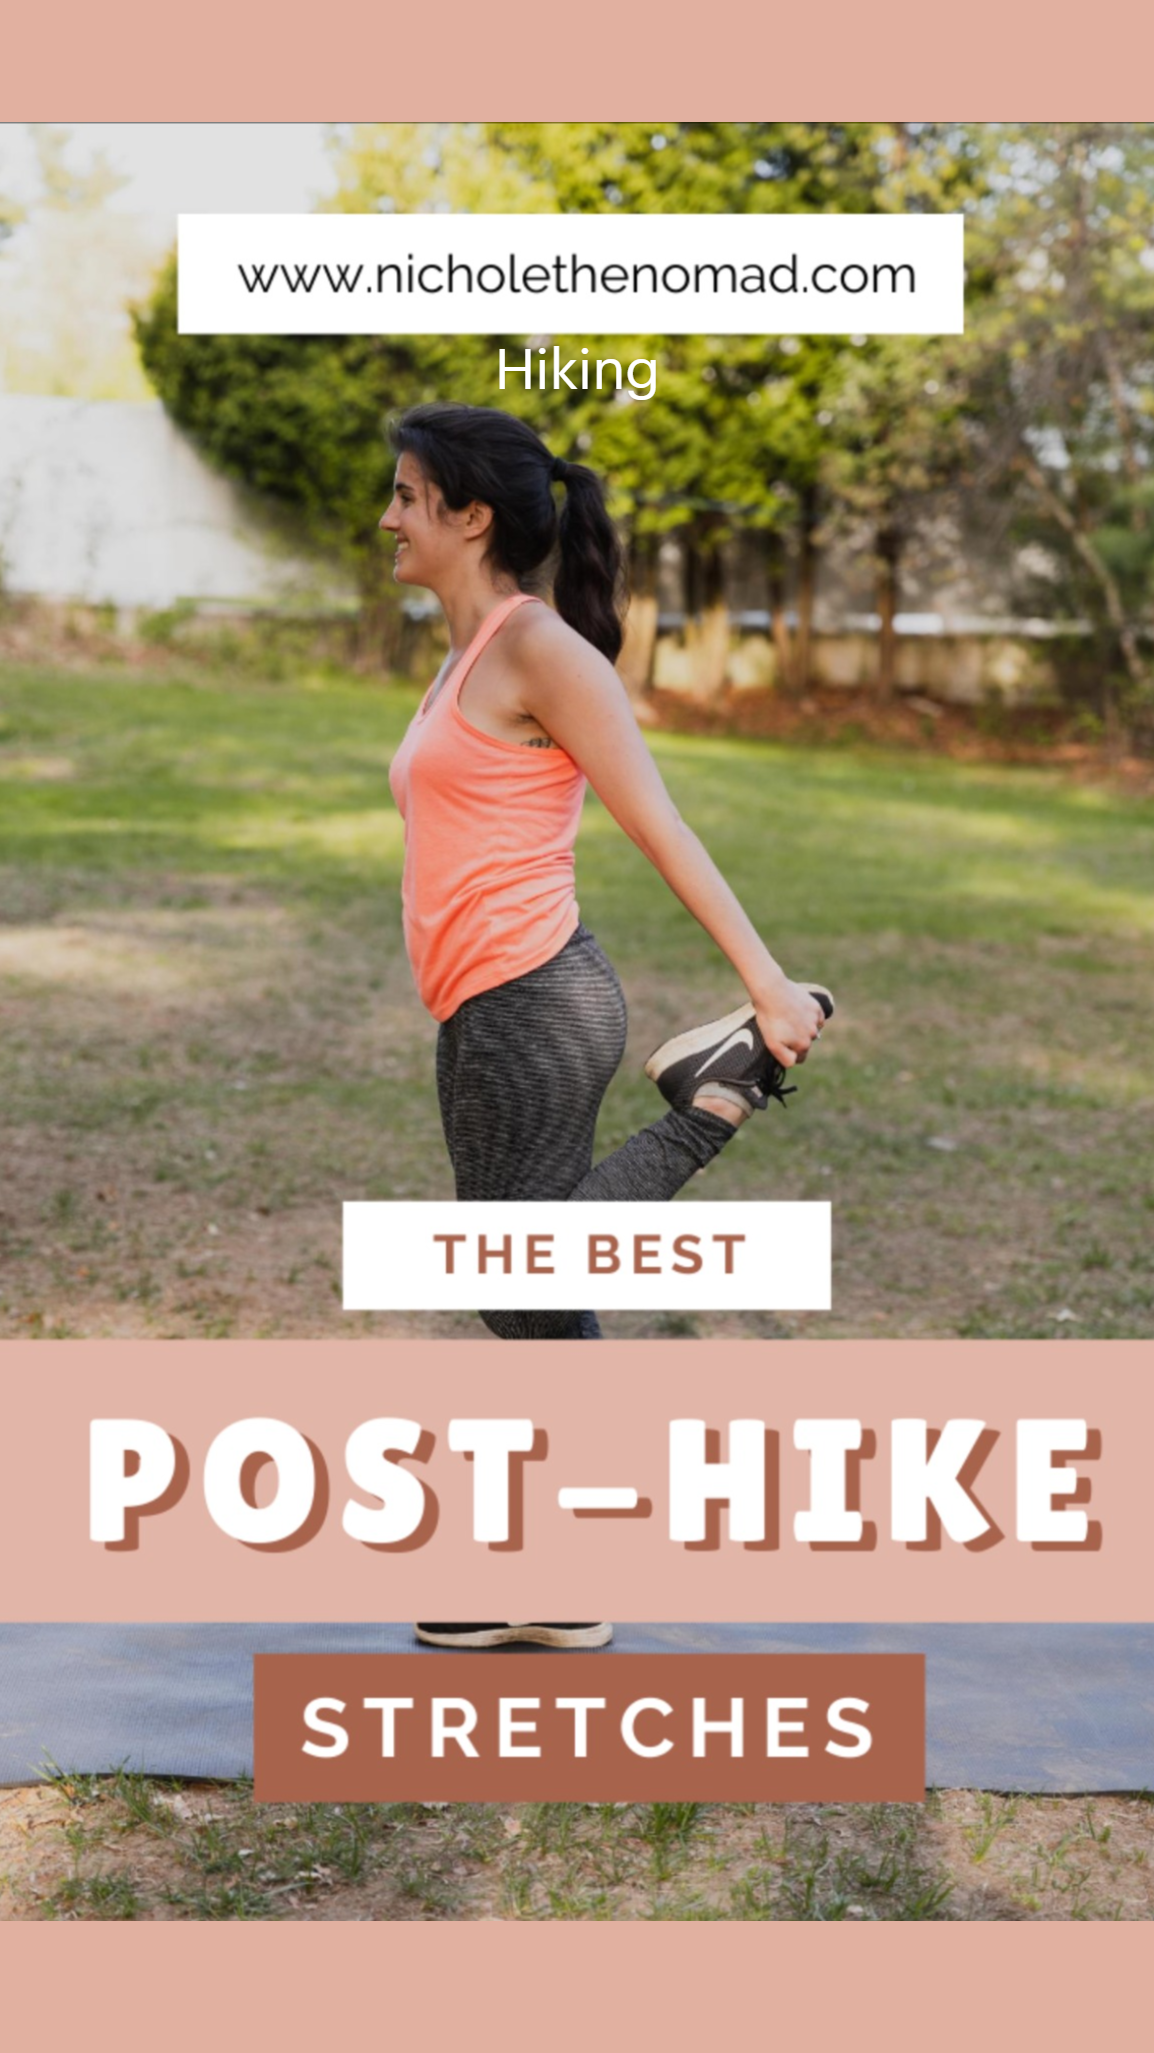 The Best Post-Hike Streches to Relieve Sore Muscles